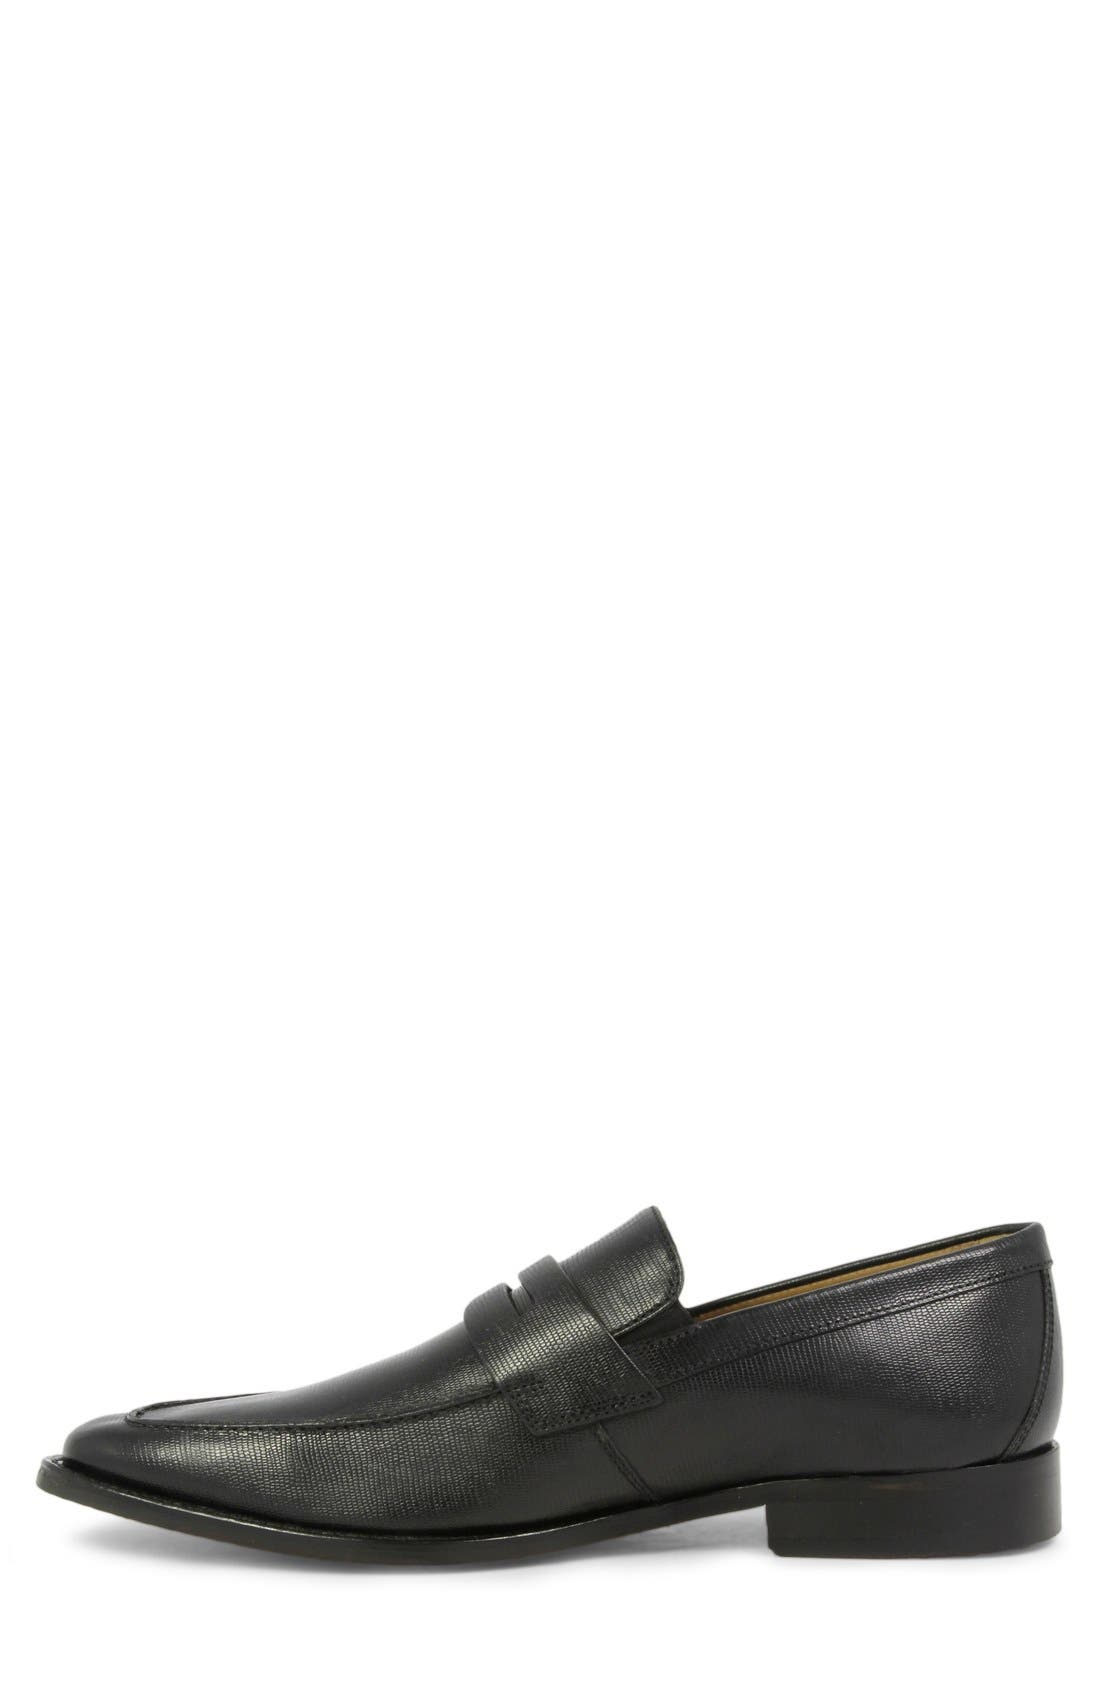 'Sabato' Penny Loafer,                             Alternate thumbnail 2, color,                             001